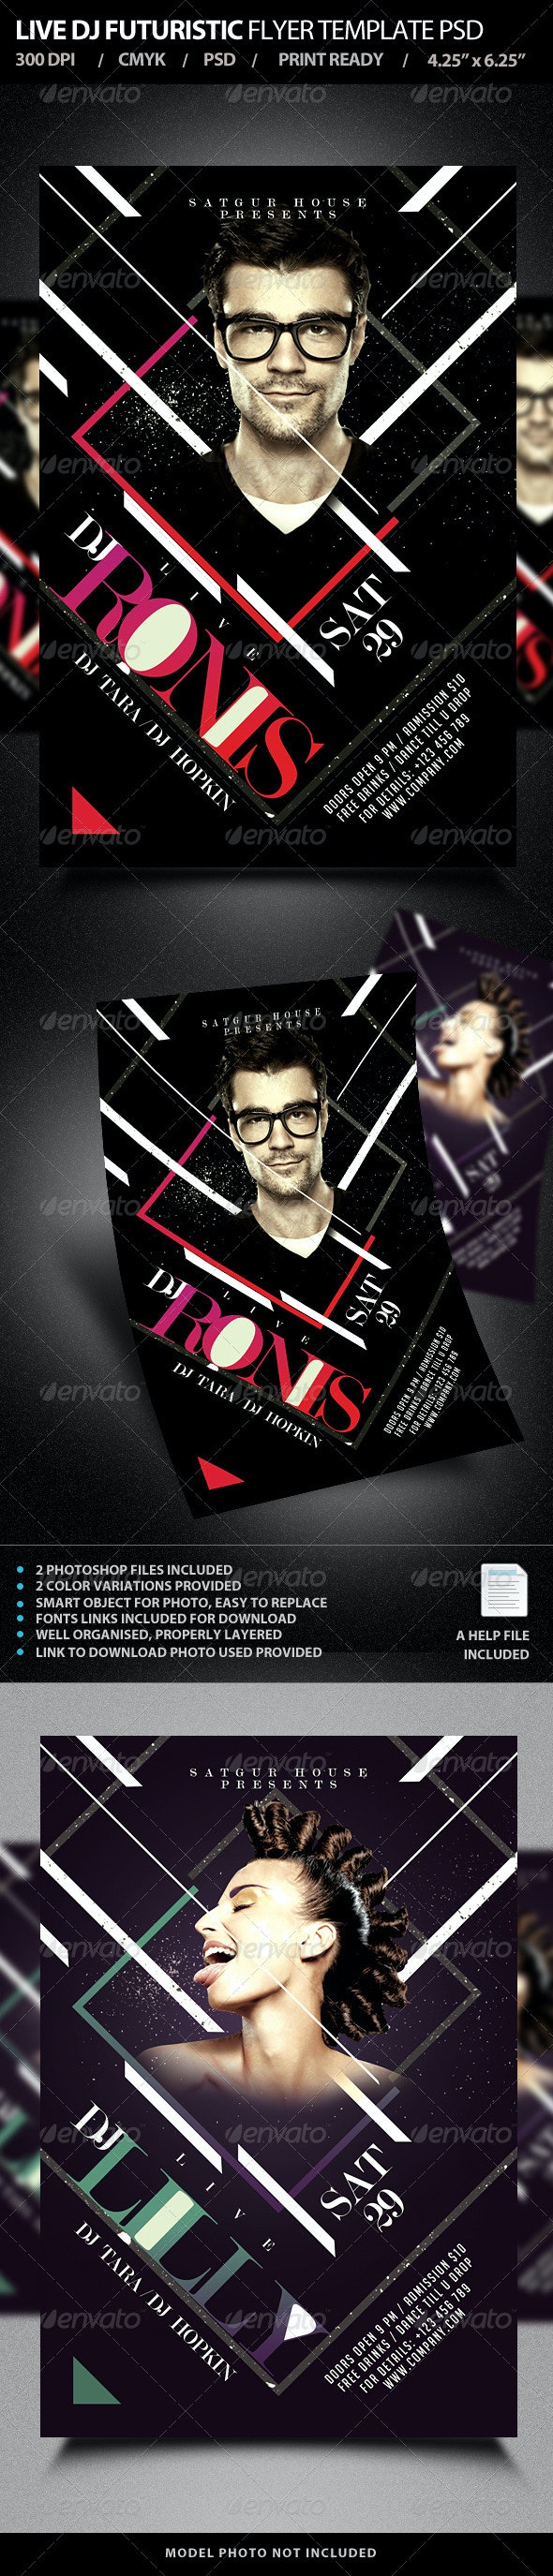 Live DJ Flyer Template PSD V2 - Clubs & Parties Events